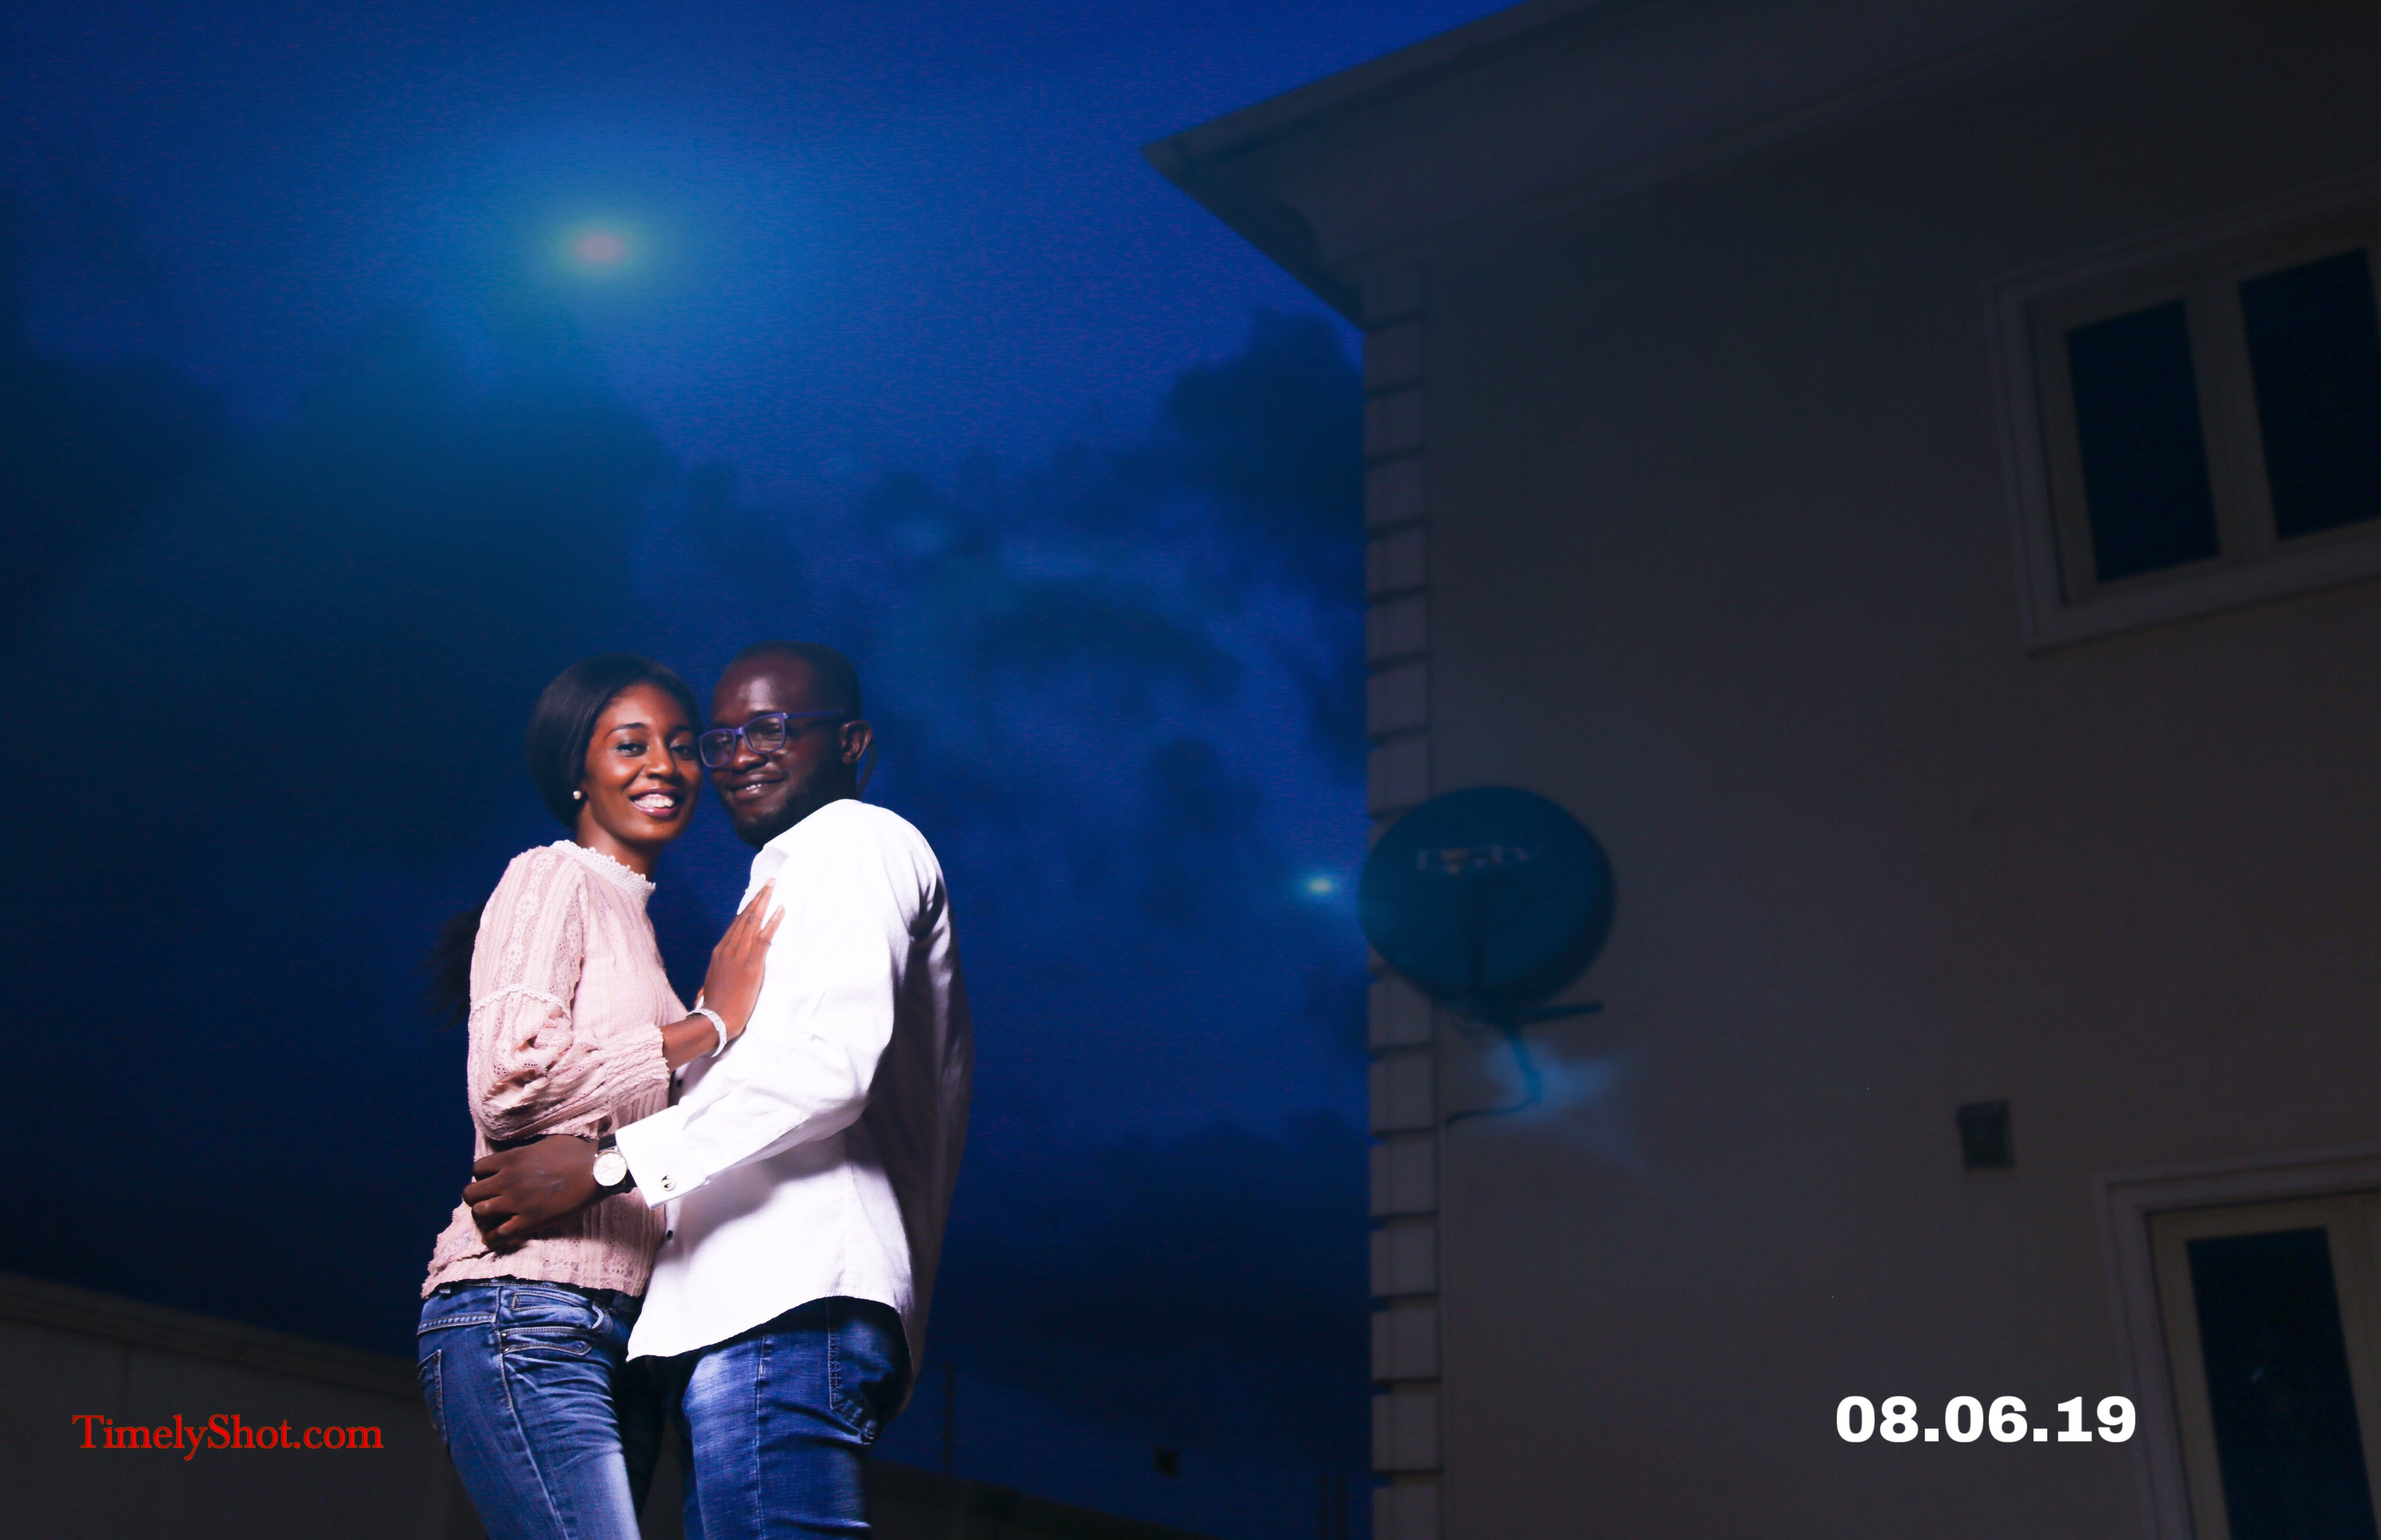 The couple under the moonlight minding their love business